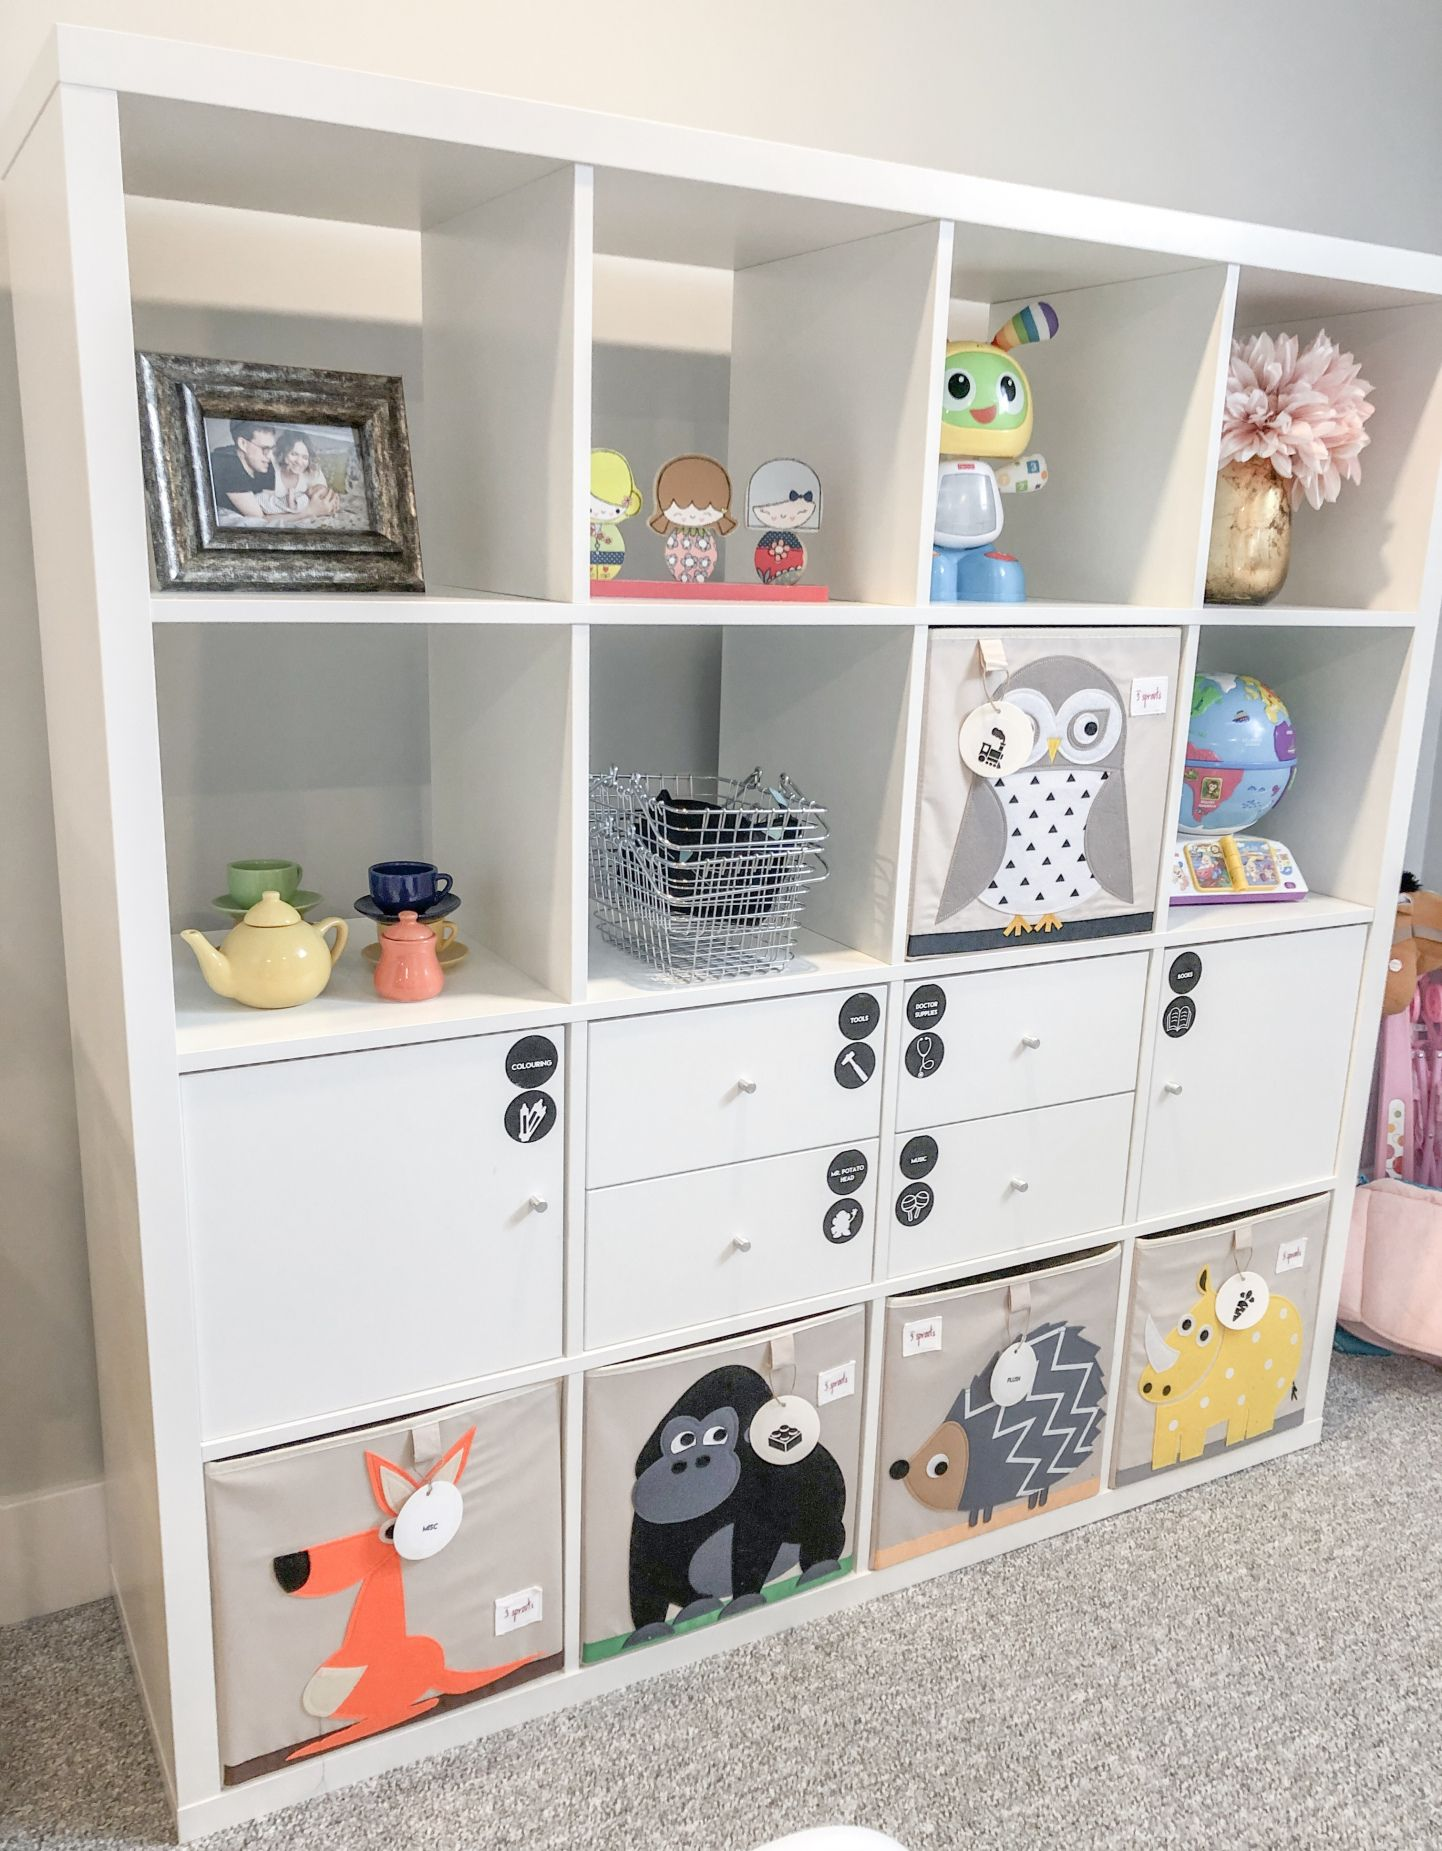 Ikea Kallax Kids Room Cheaper Than Retail Price Buy Clothing Accessories And Lifestyle Products For Women Men